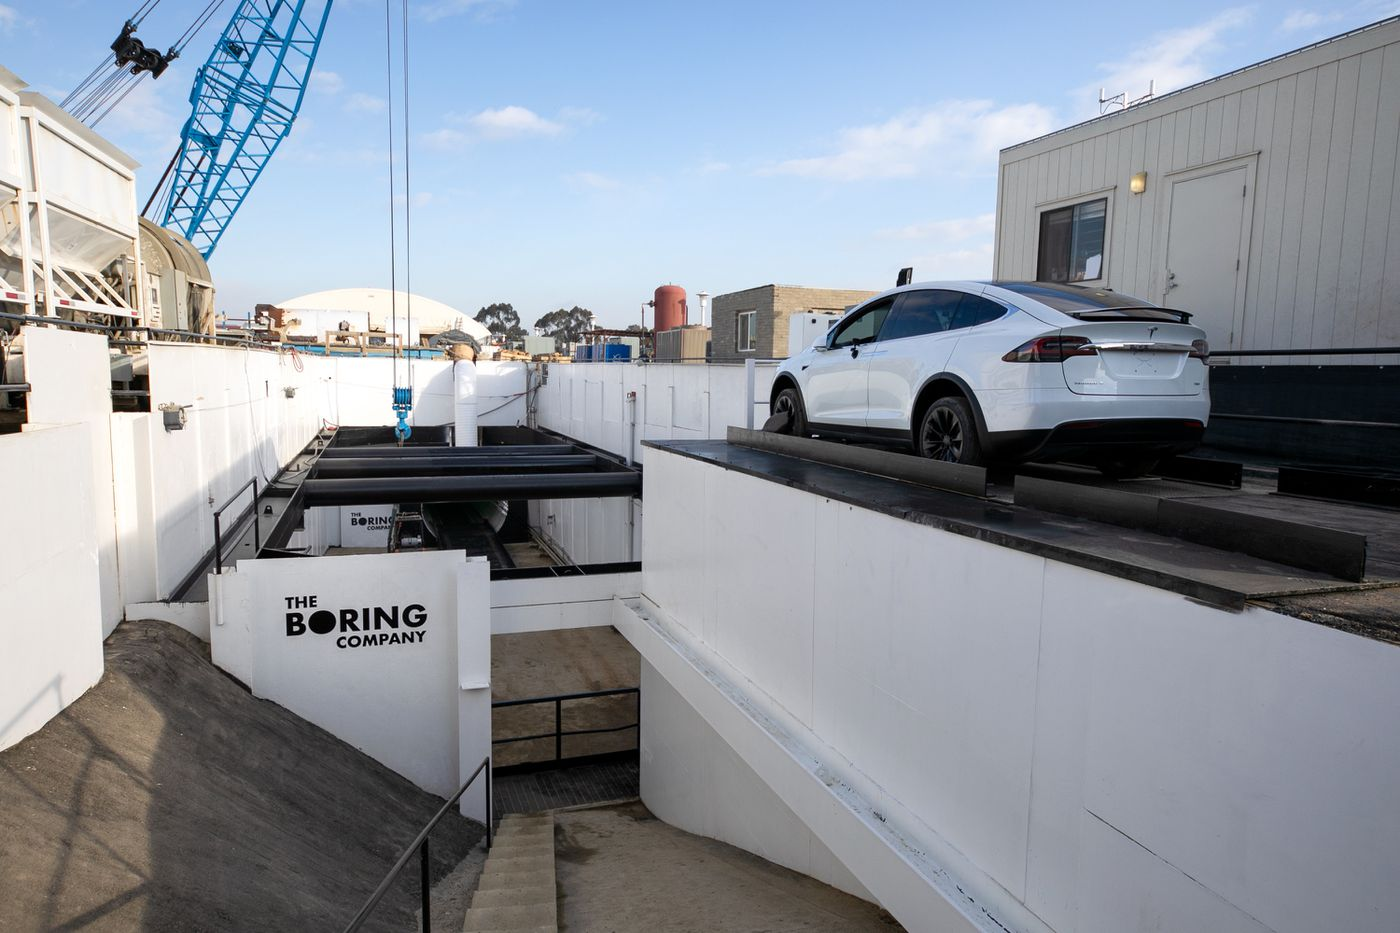 Elon Musk debuts 'Loop' tunnel in Los Angeles - Curbed LA